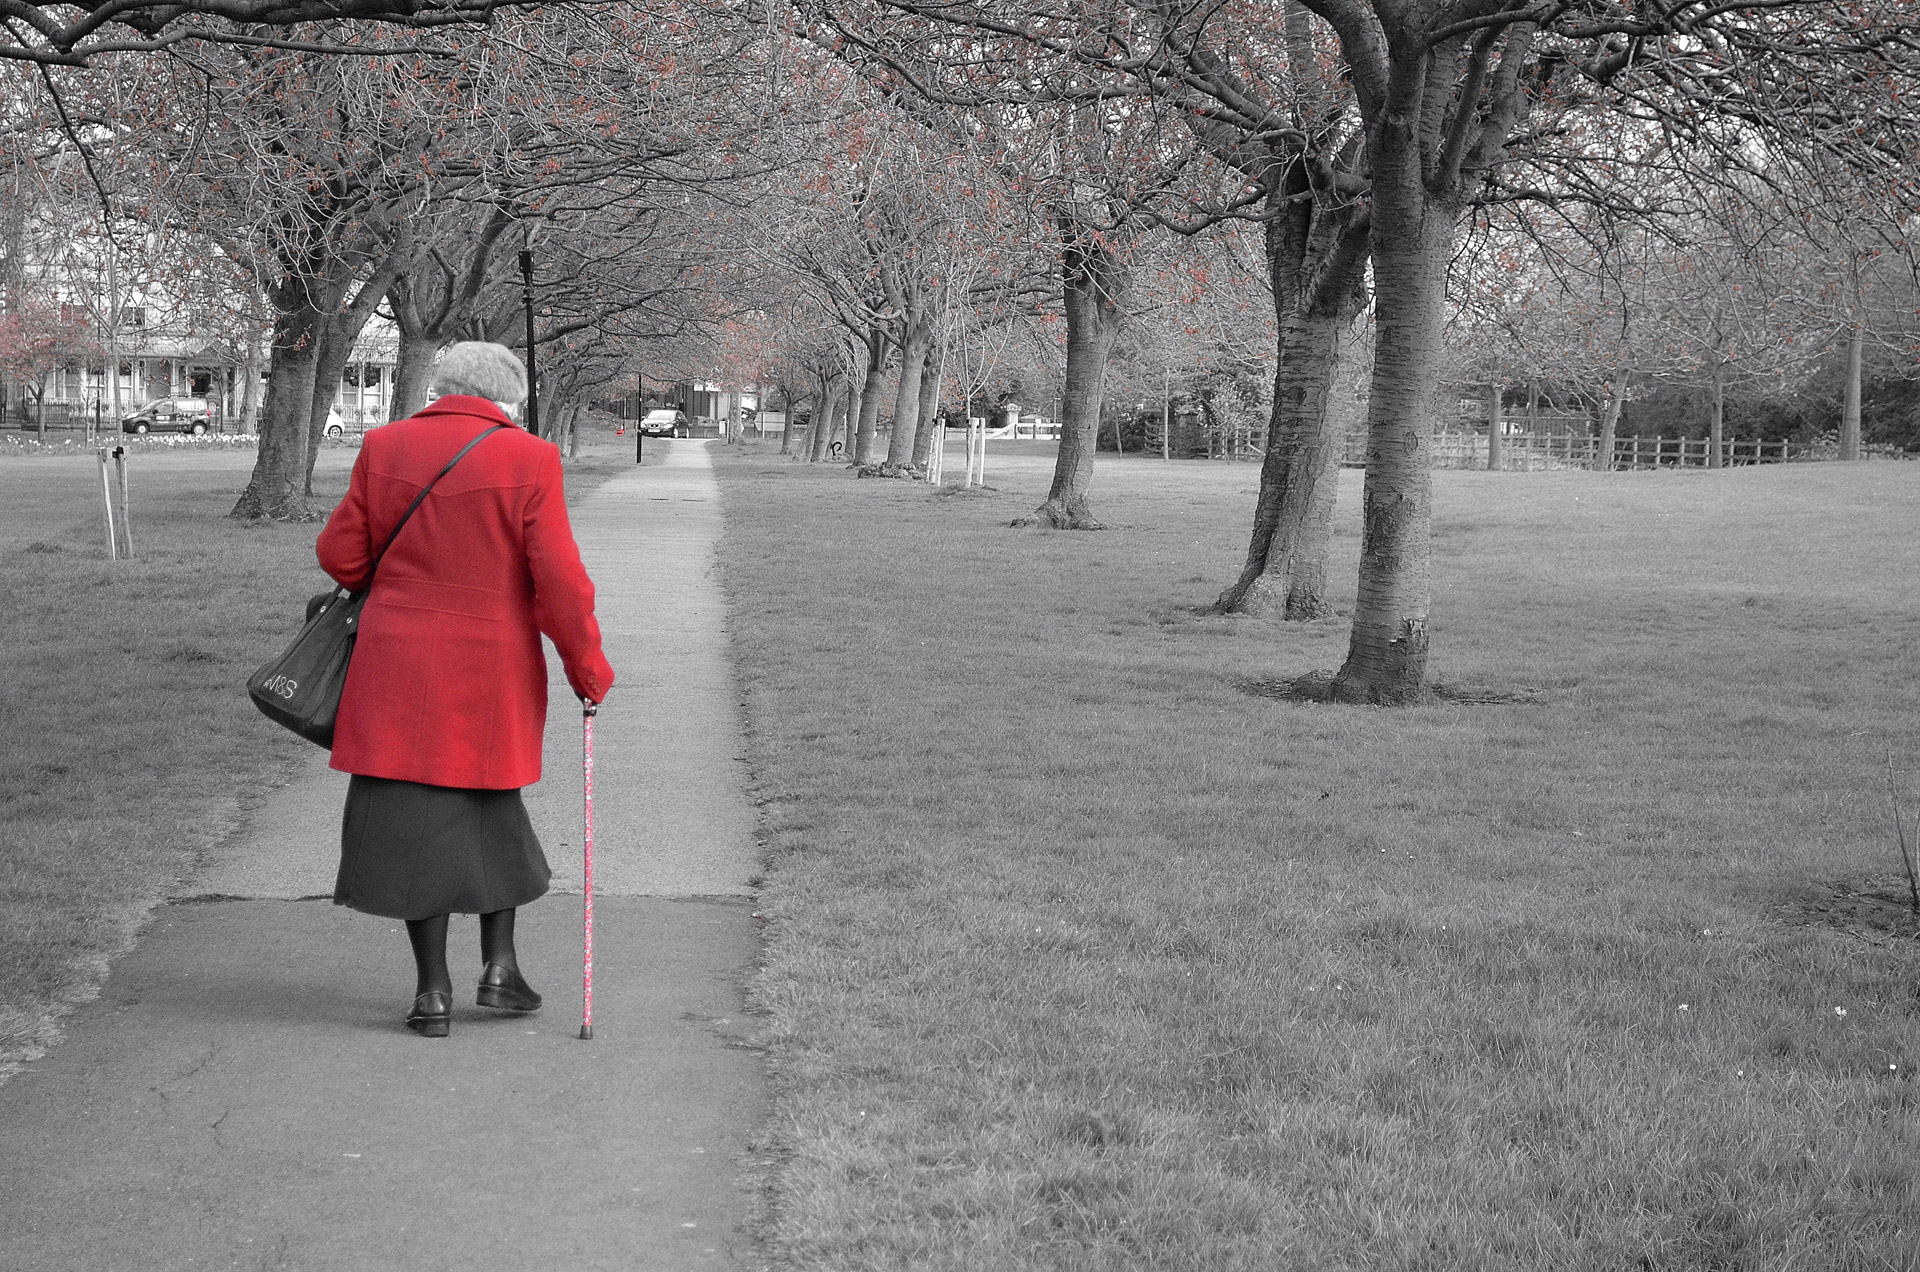 the-old-lady-in-a-red-coat-1334311747Q1L